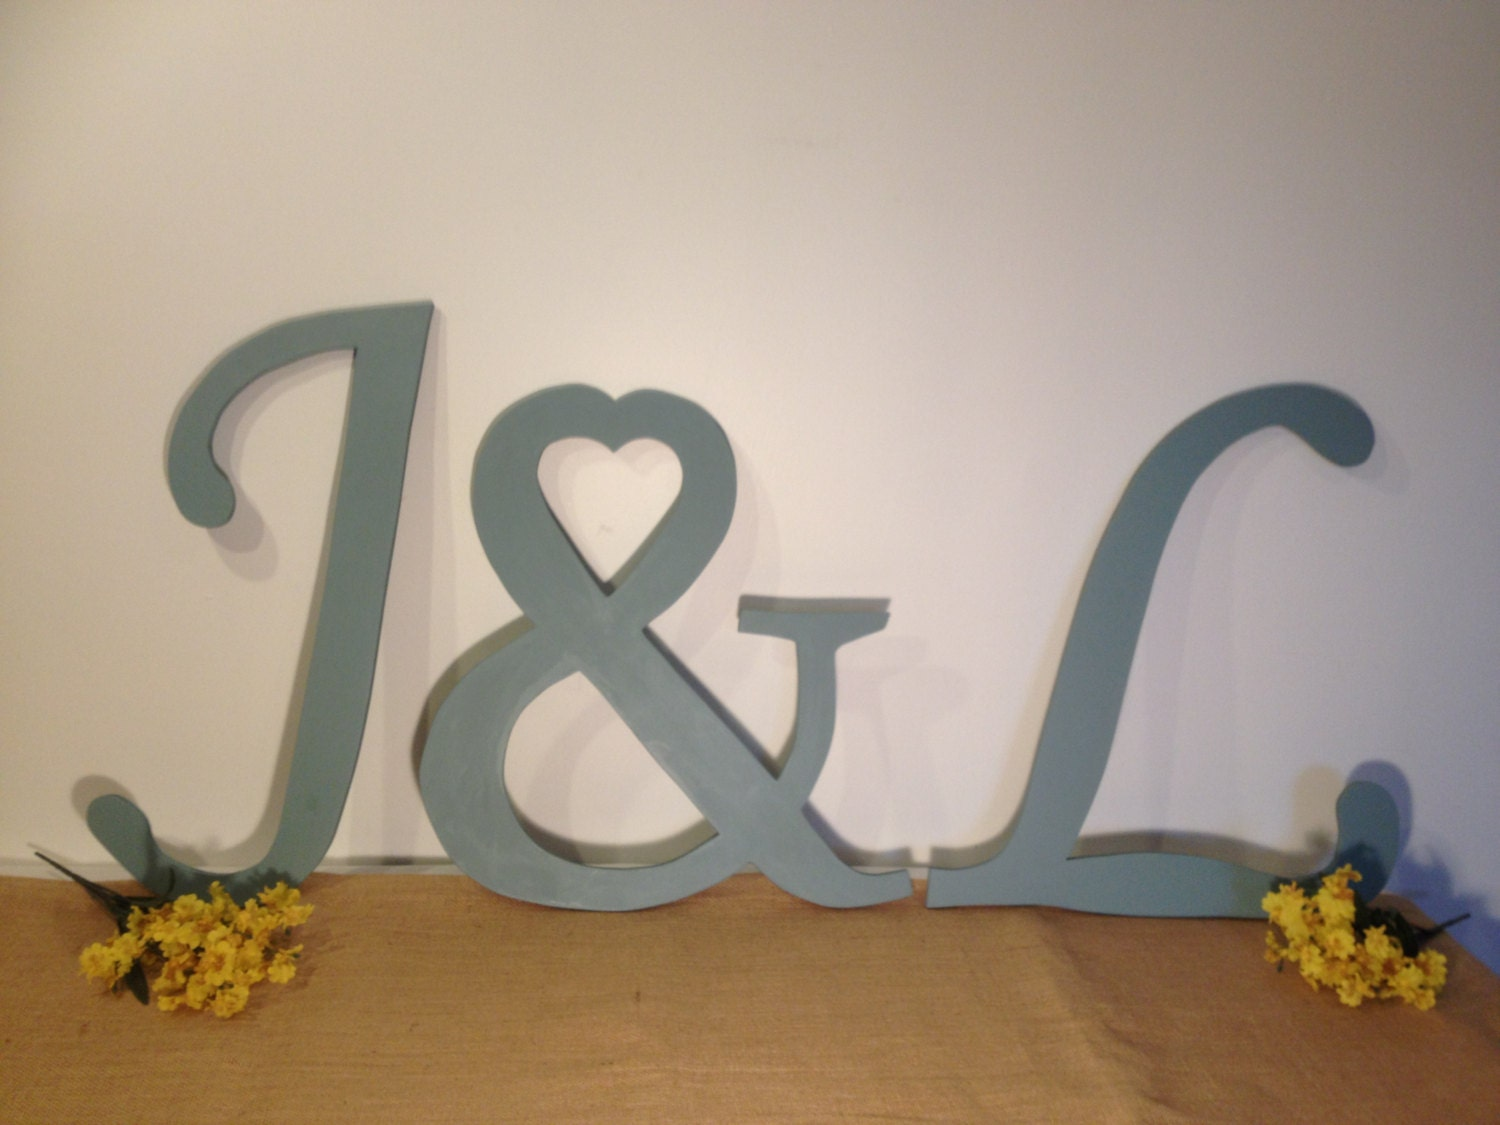 Large wooden letter set decorative wall by thedreamweddingshop - Decorative wooden letters for walls ...